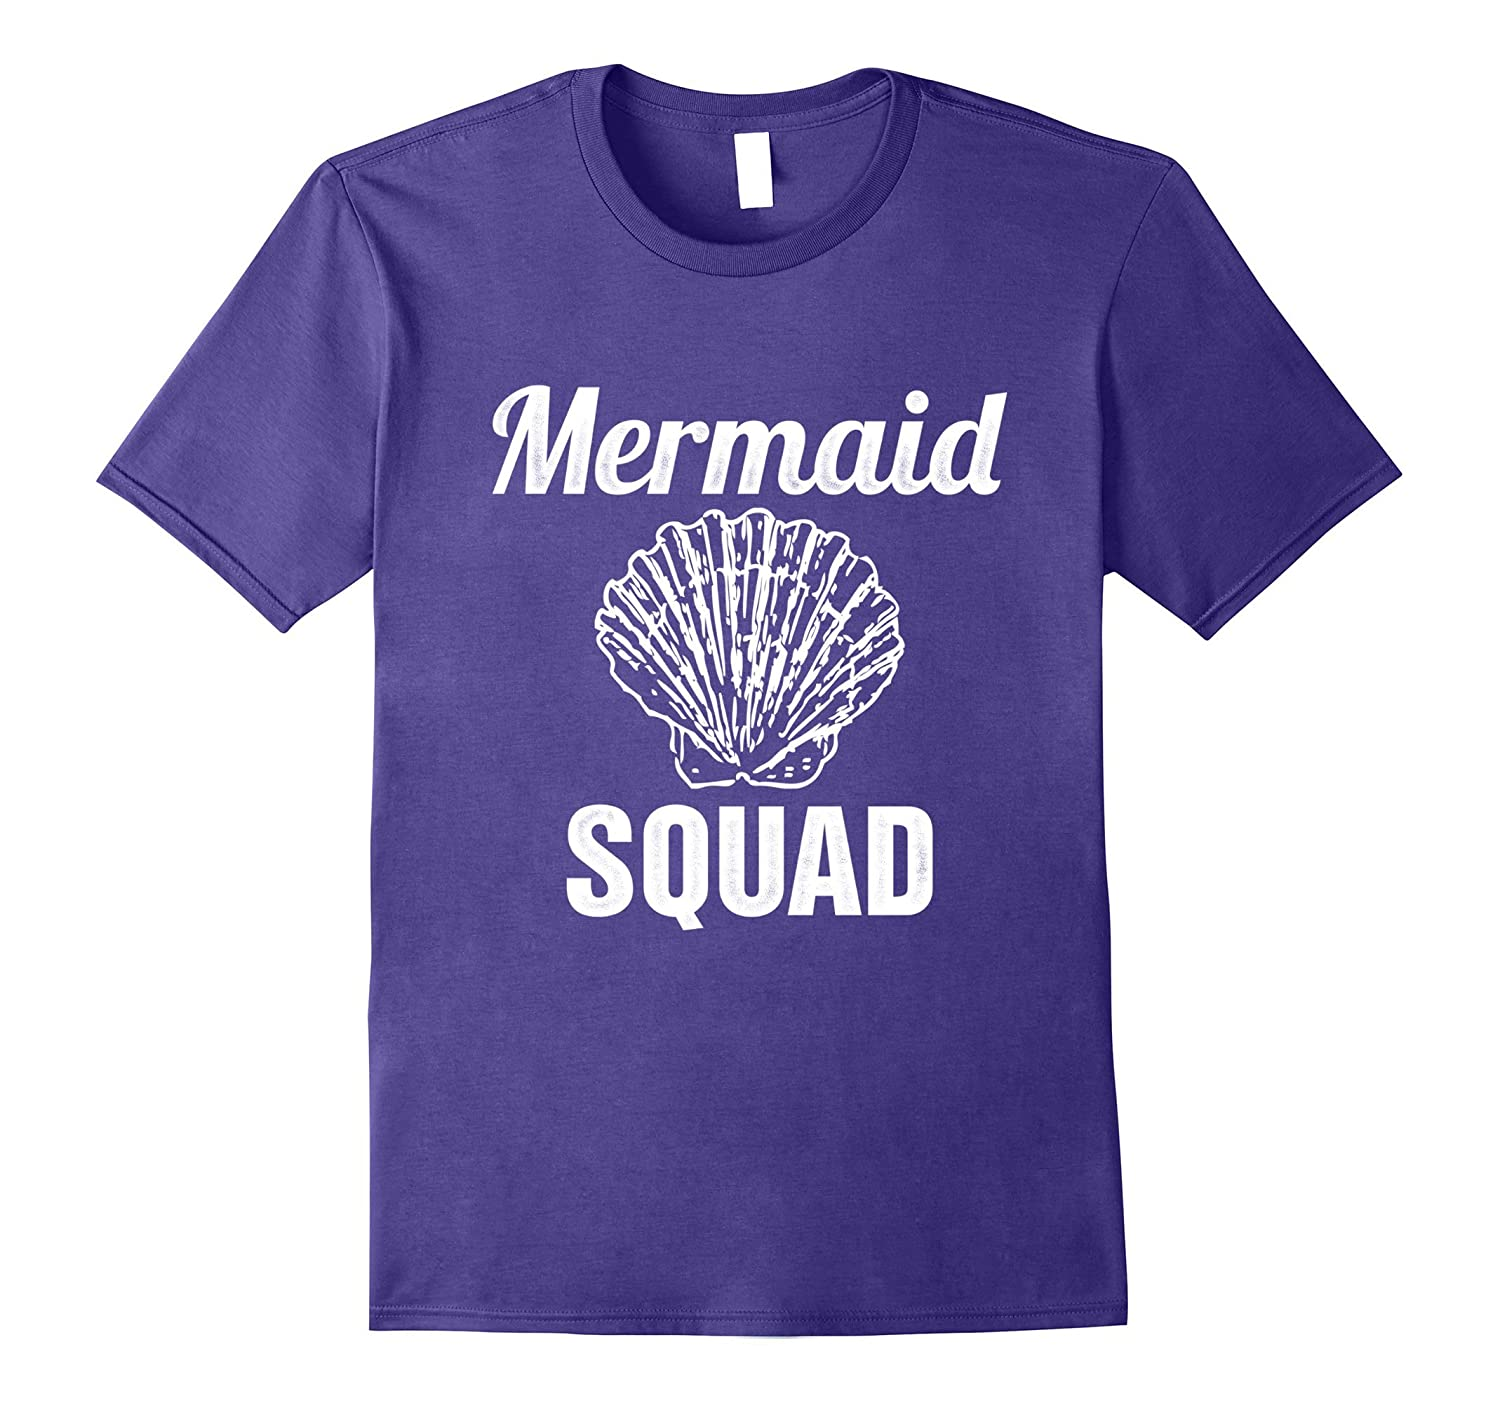 Awesome Mermaid Squad T-shirt Cute Mermaid Clam Shirt-CD